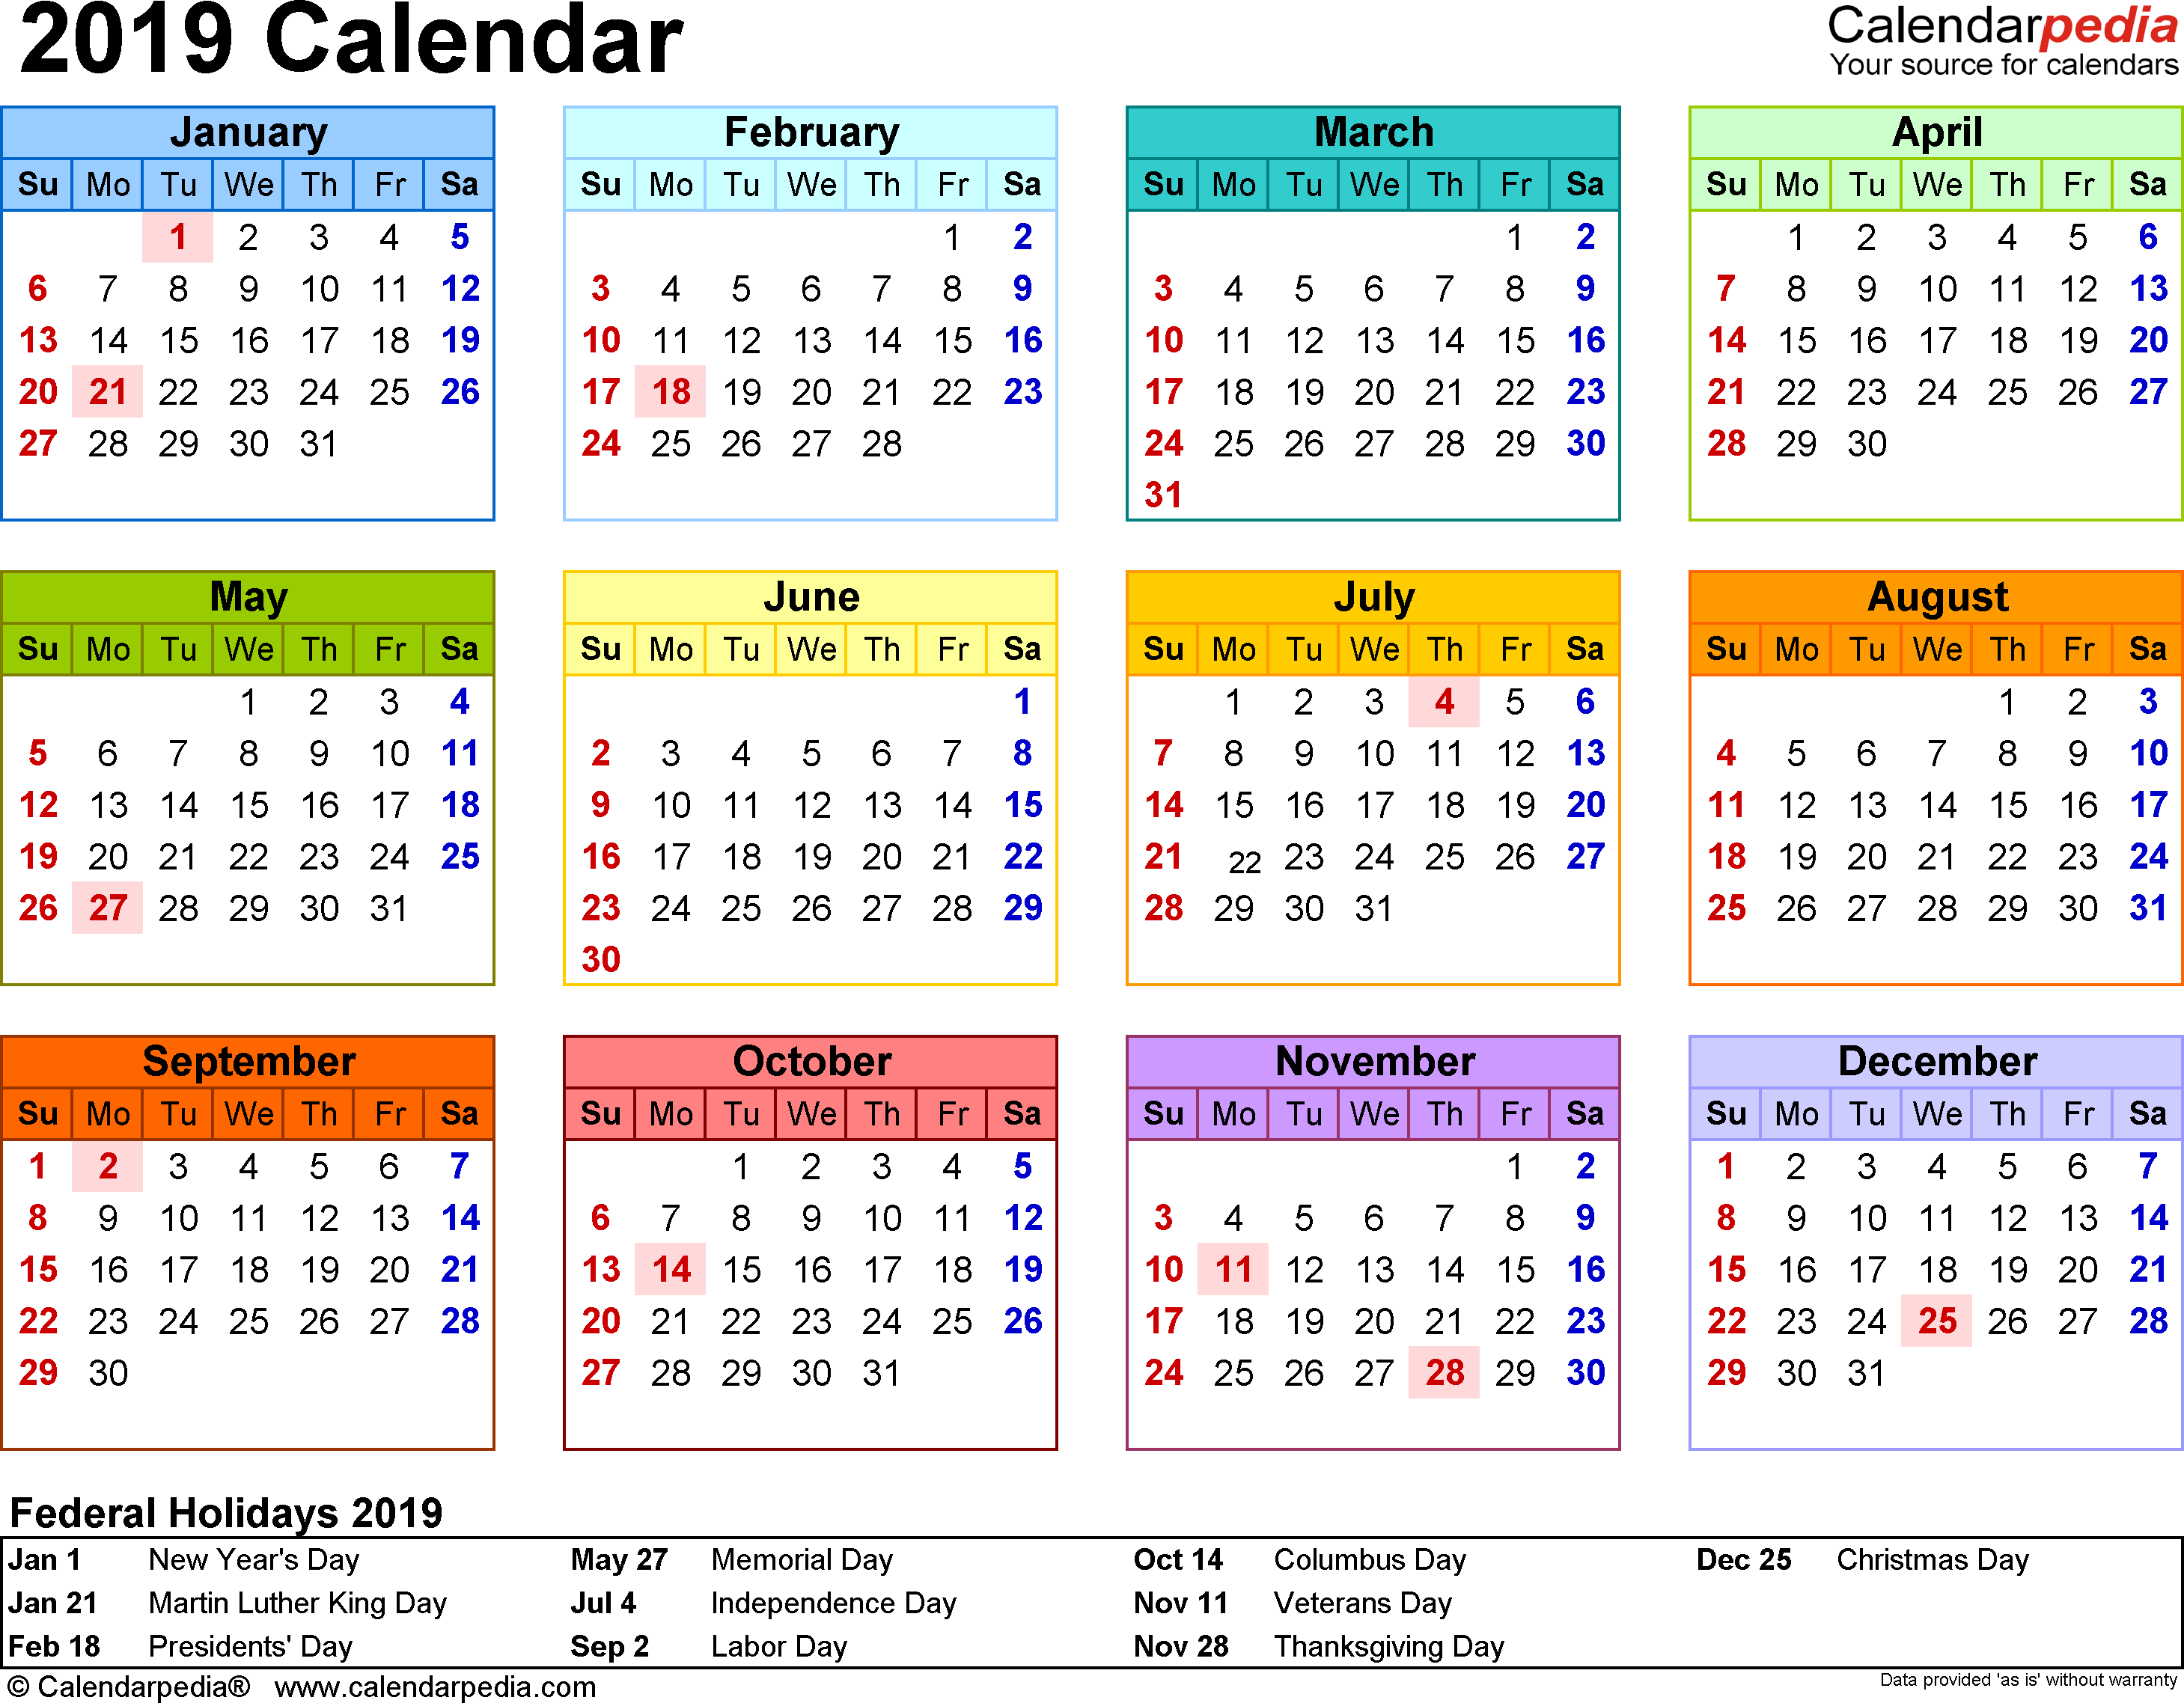 Calendar Download Free Printable Excel Templates Xlsx - Excel templates